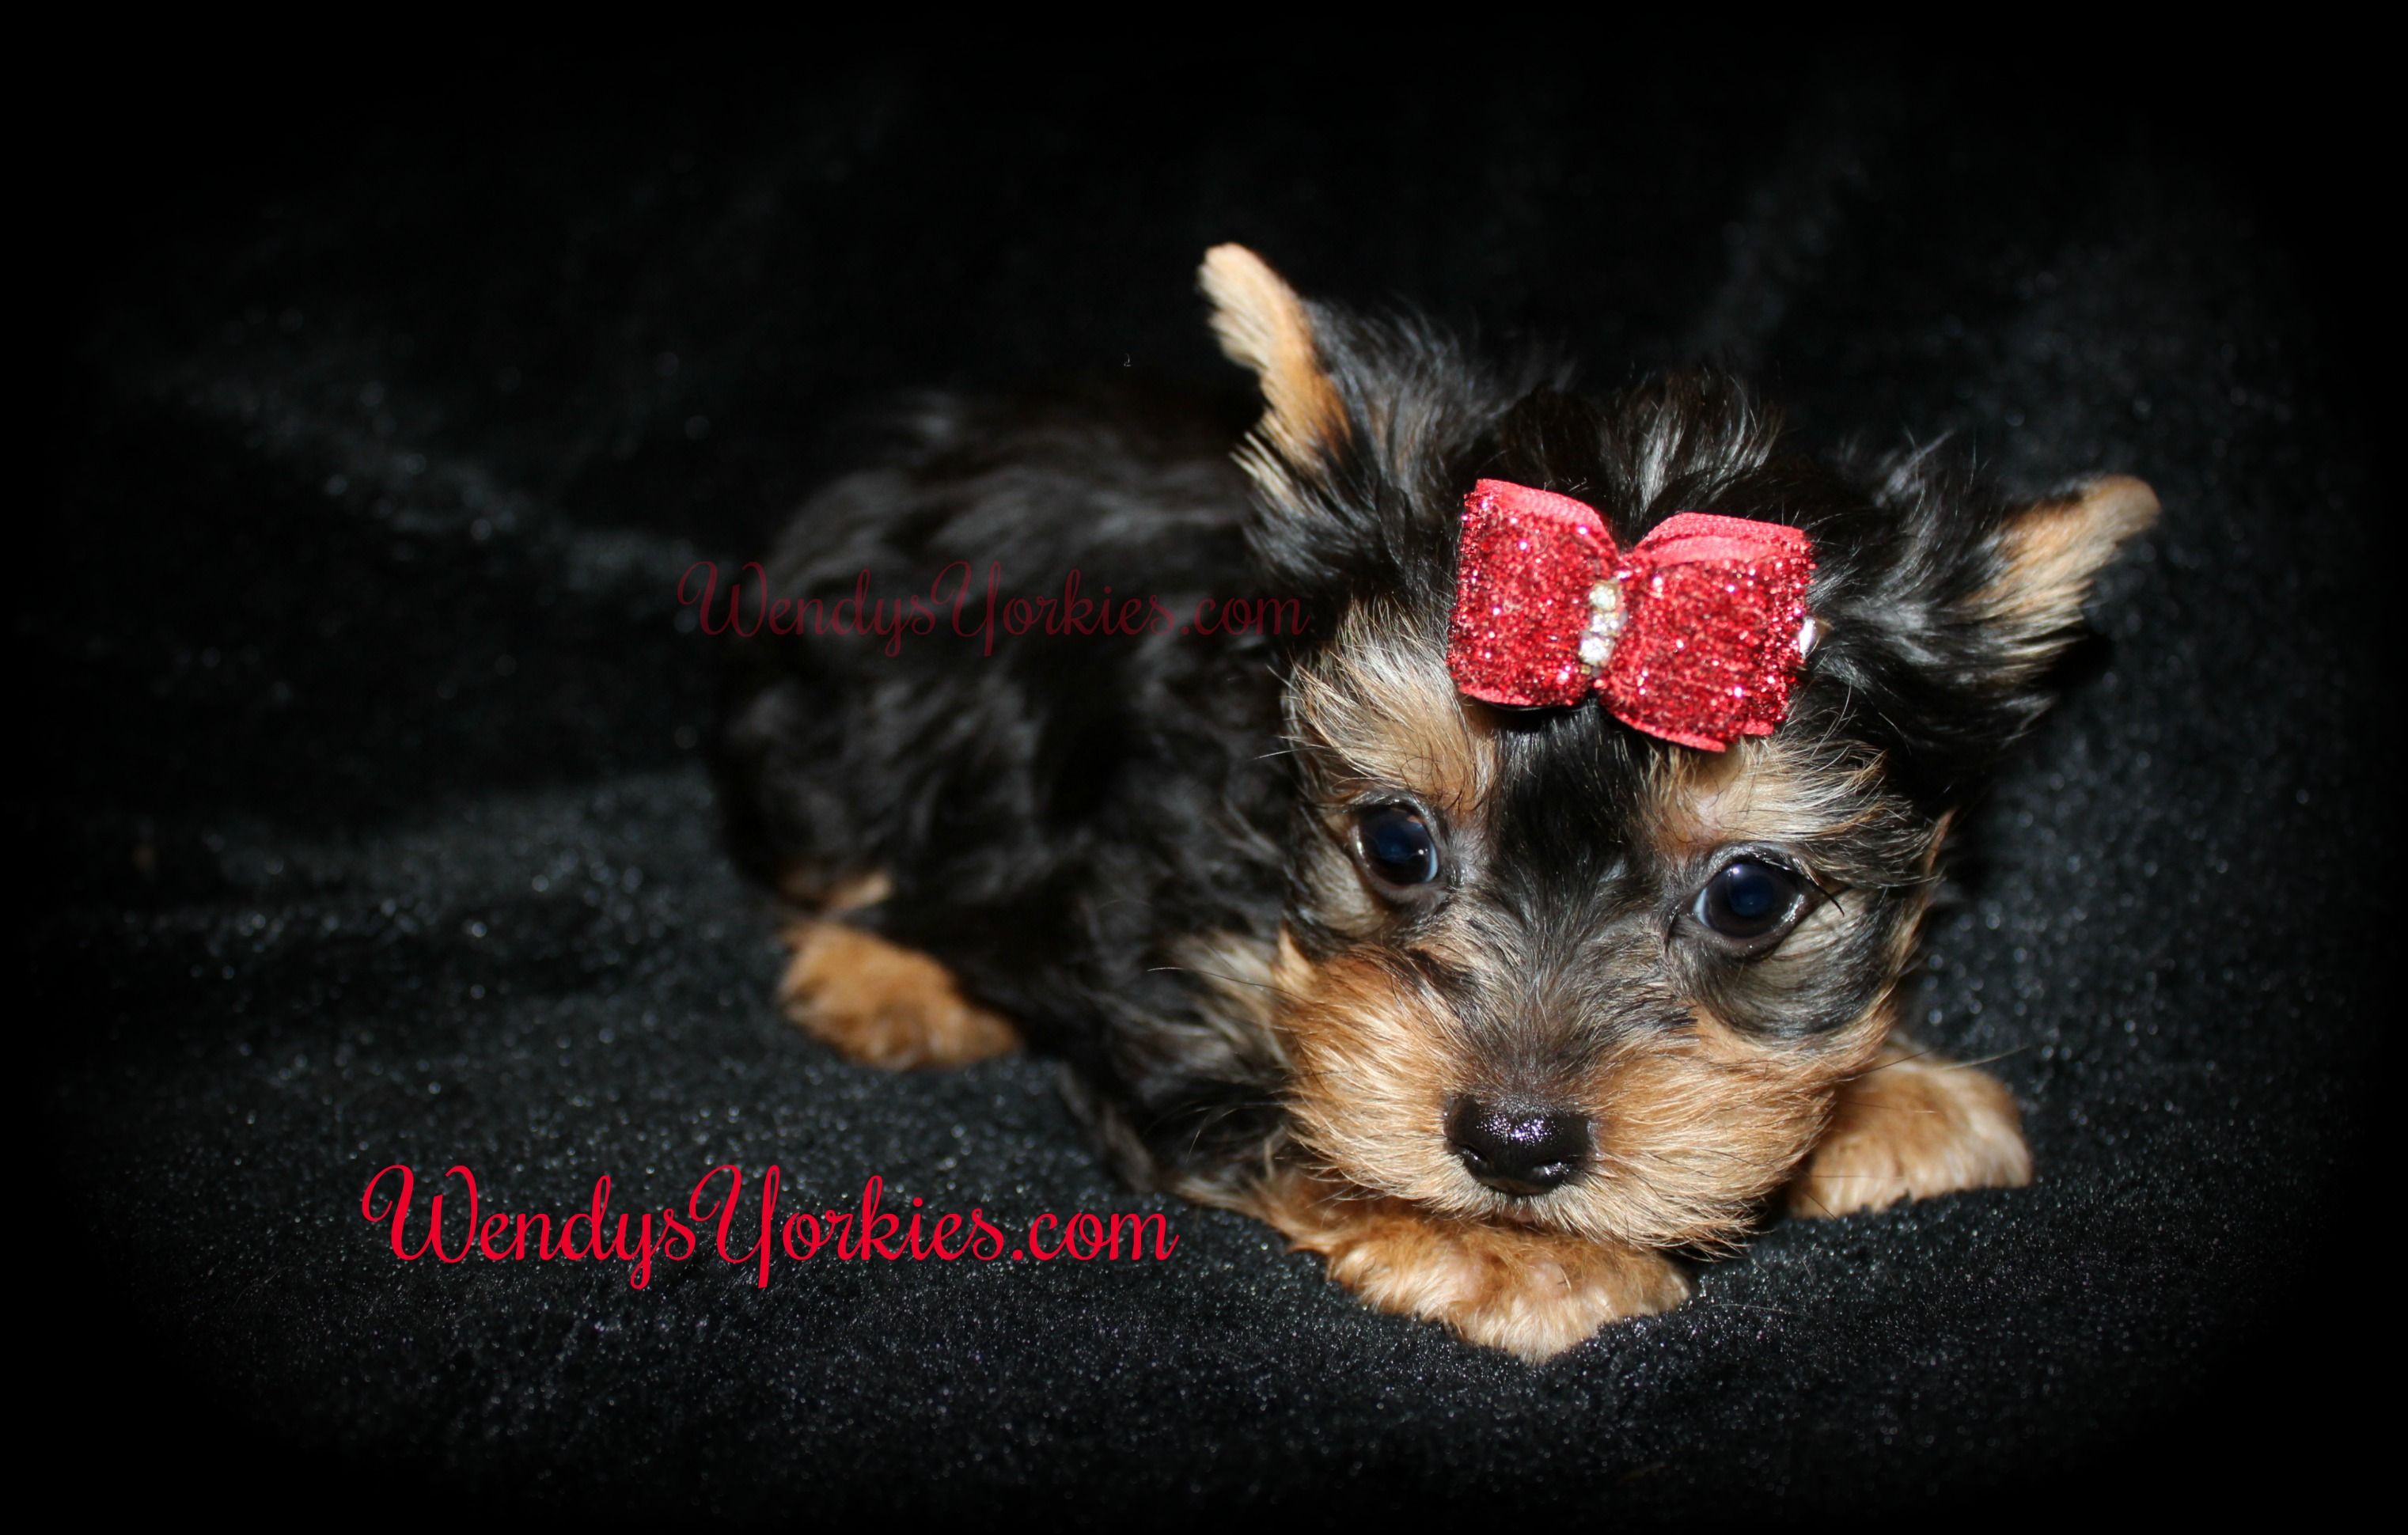 Male Teacup Yorkie puppy for sale, Yorkie puppies for sale in Texas, Anna m3, WendysYorkies.com